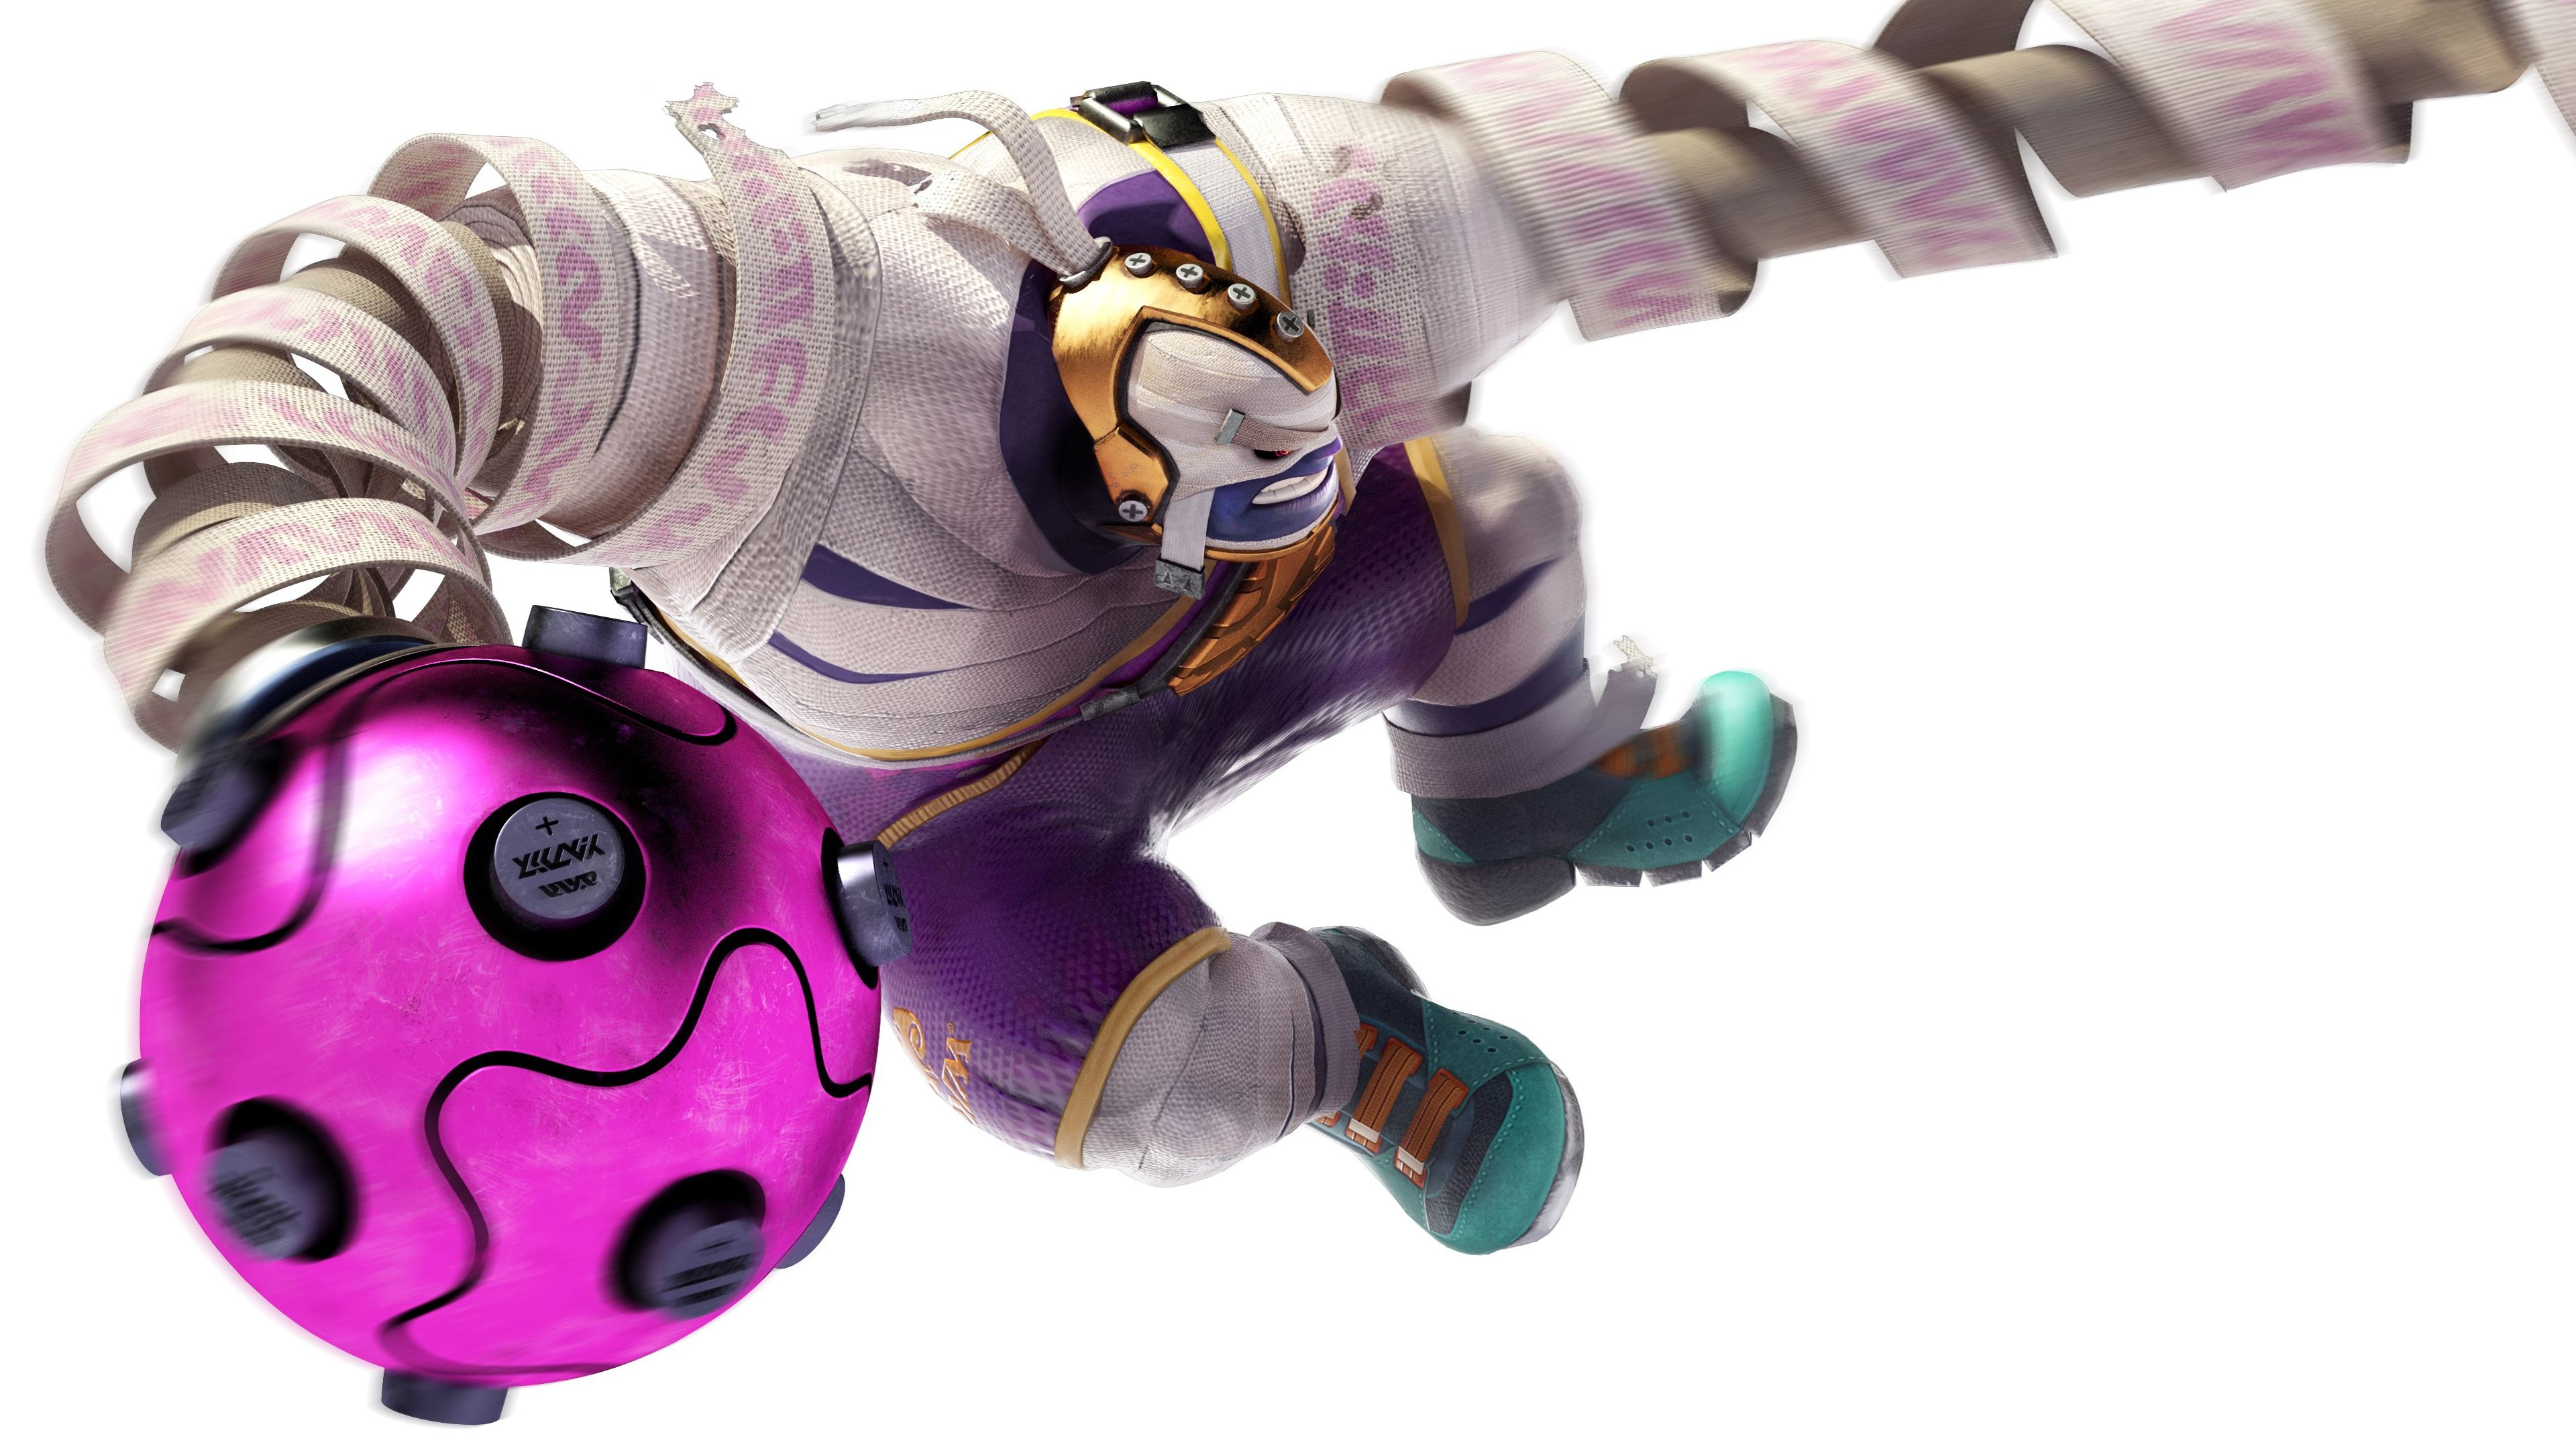 4K Master Mummy ARMS Nintendo Switch Game 3840x2160 Arms